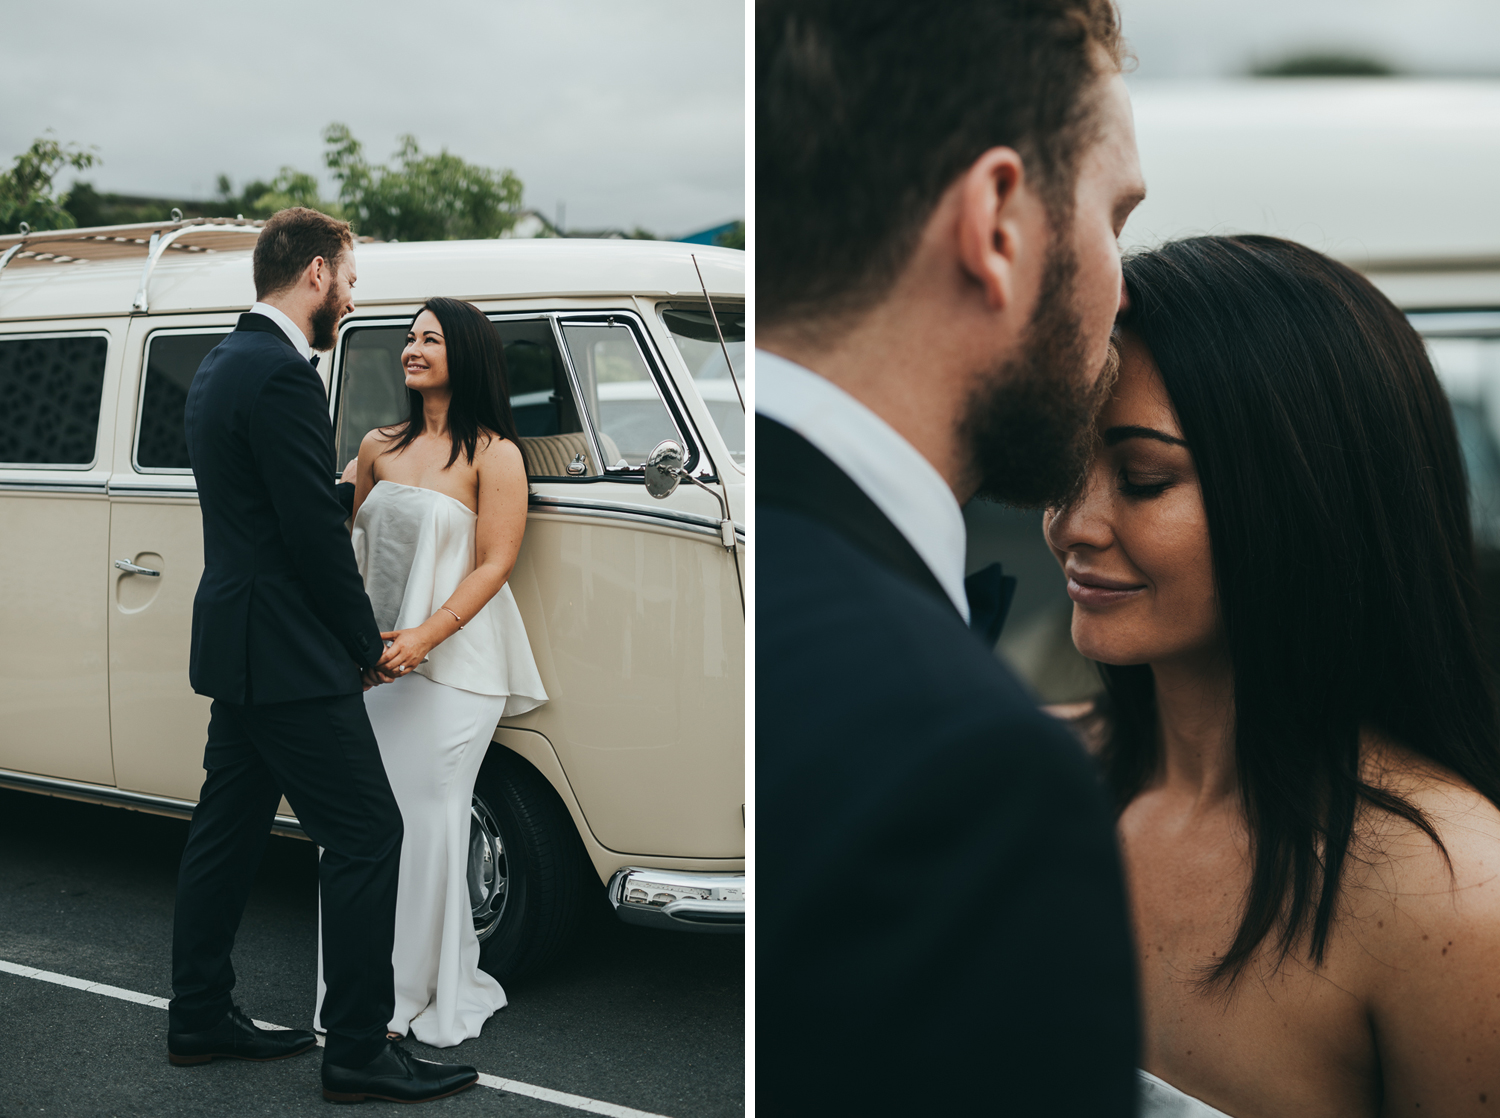 093-halcyon_house_byron_bay_wedding_photographer.jpg